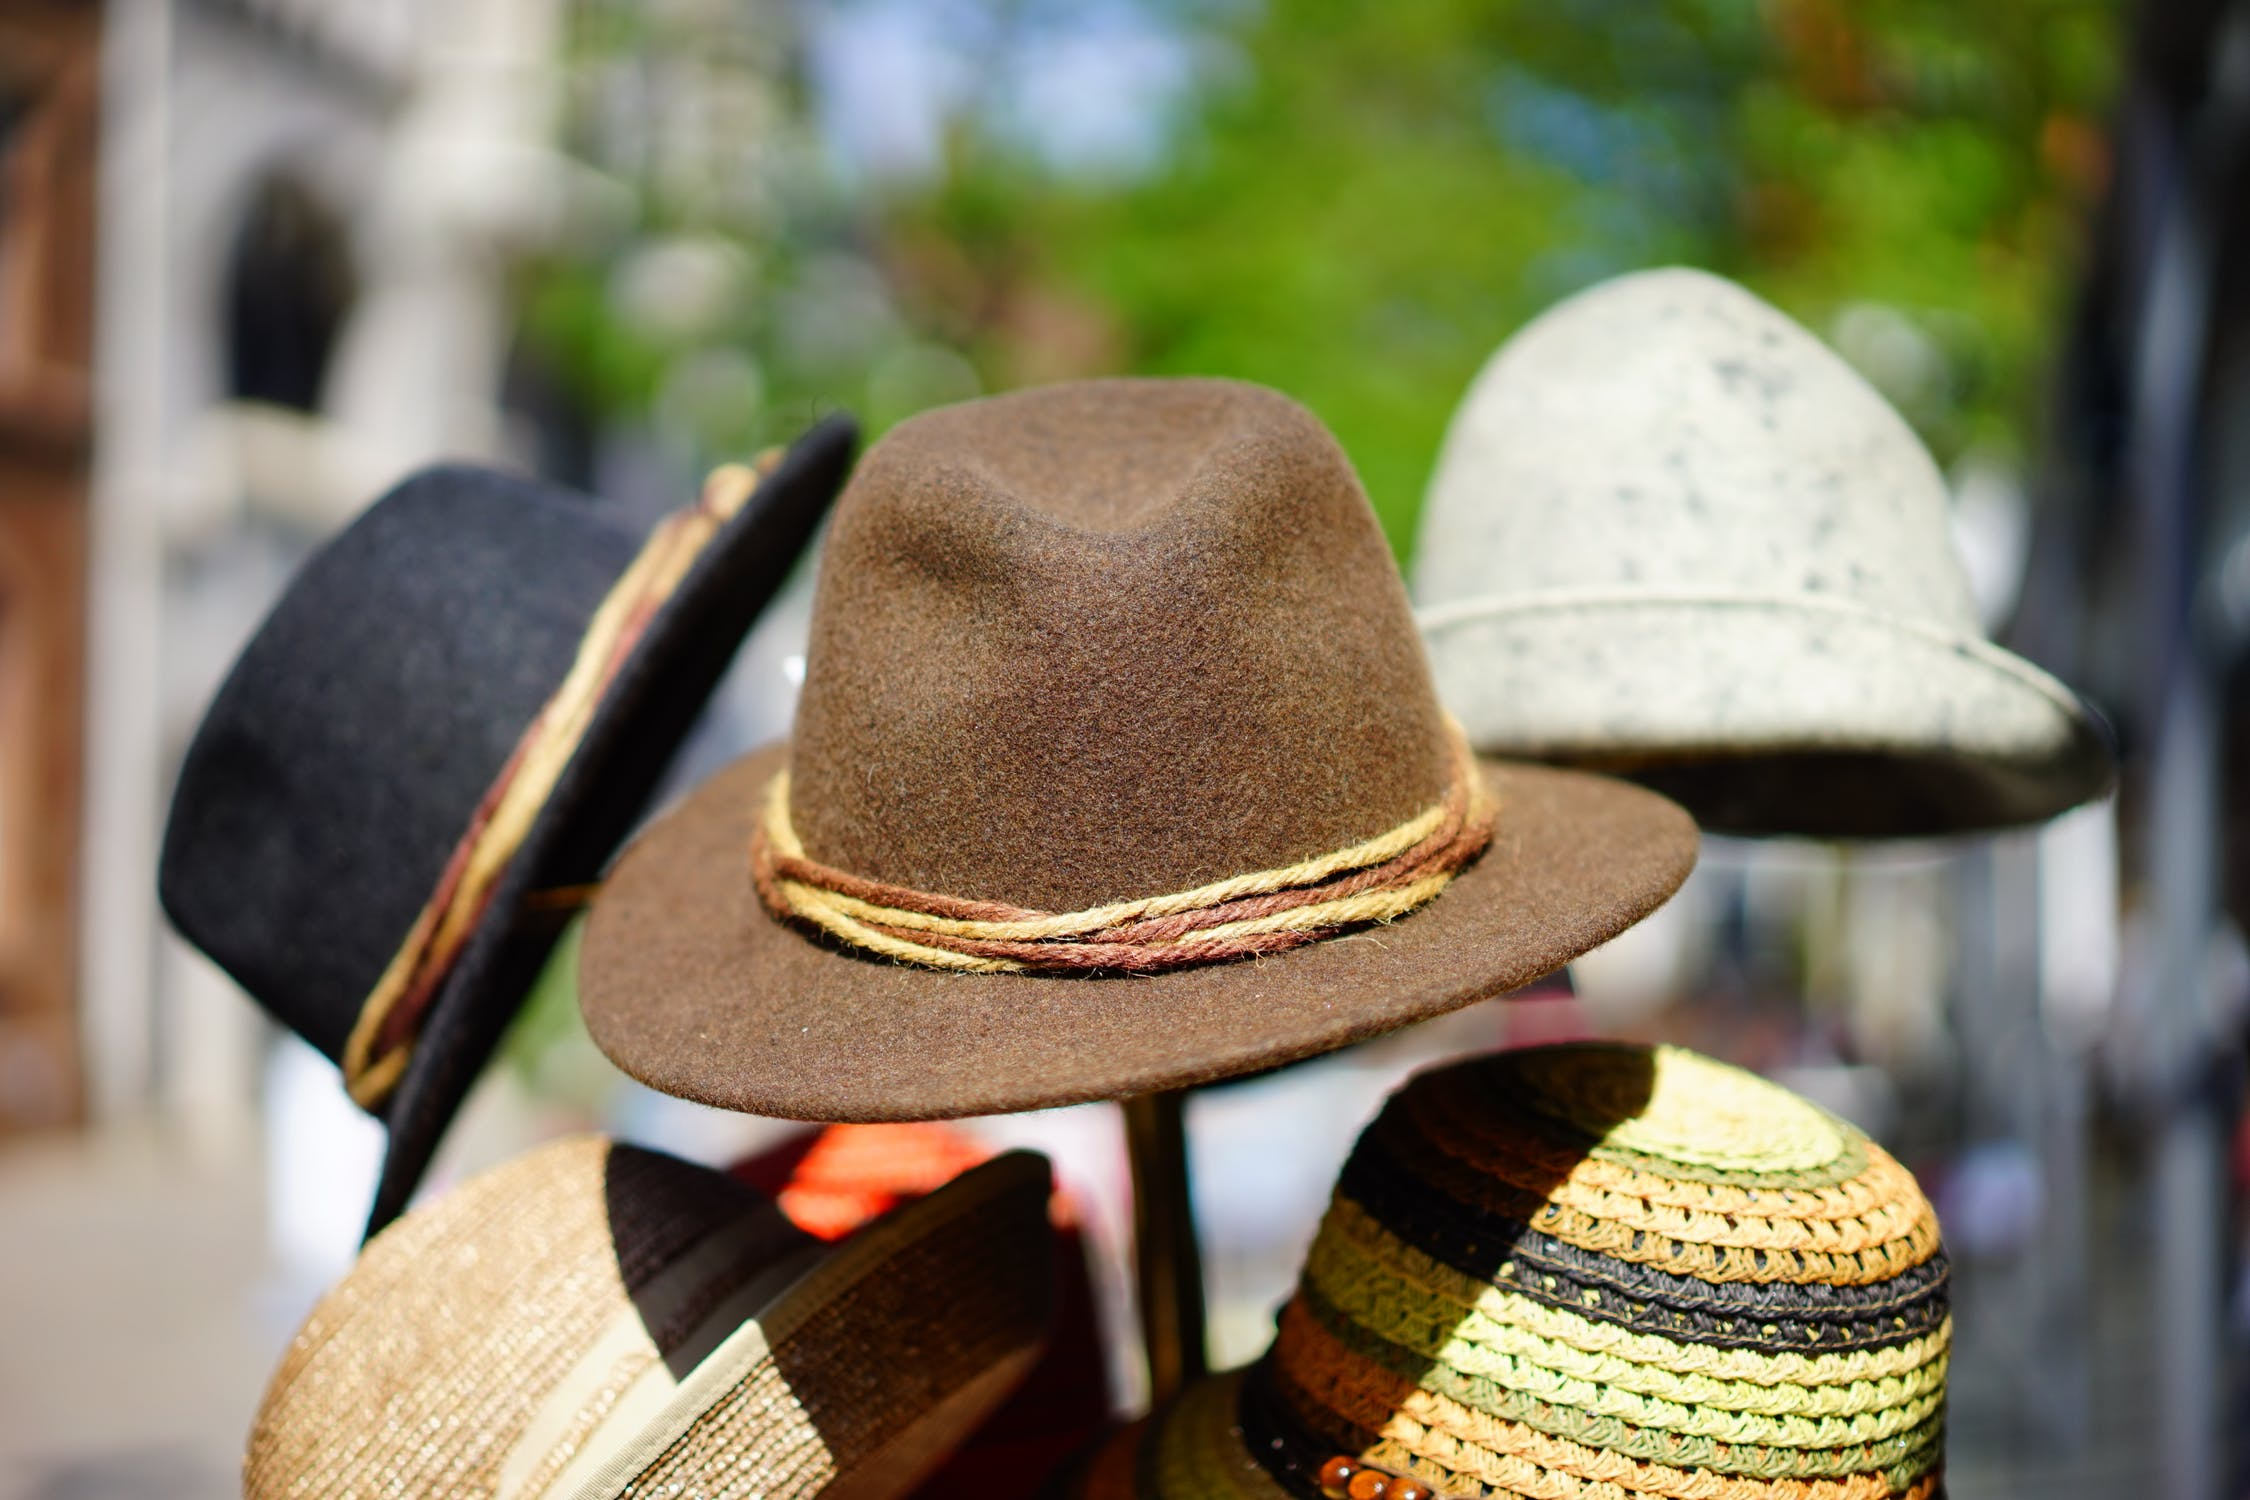 Most Popular Fabrics Used in Making Hats